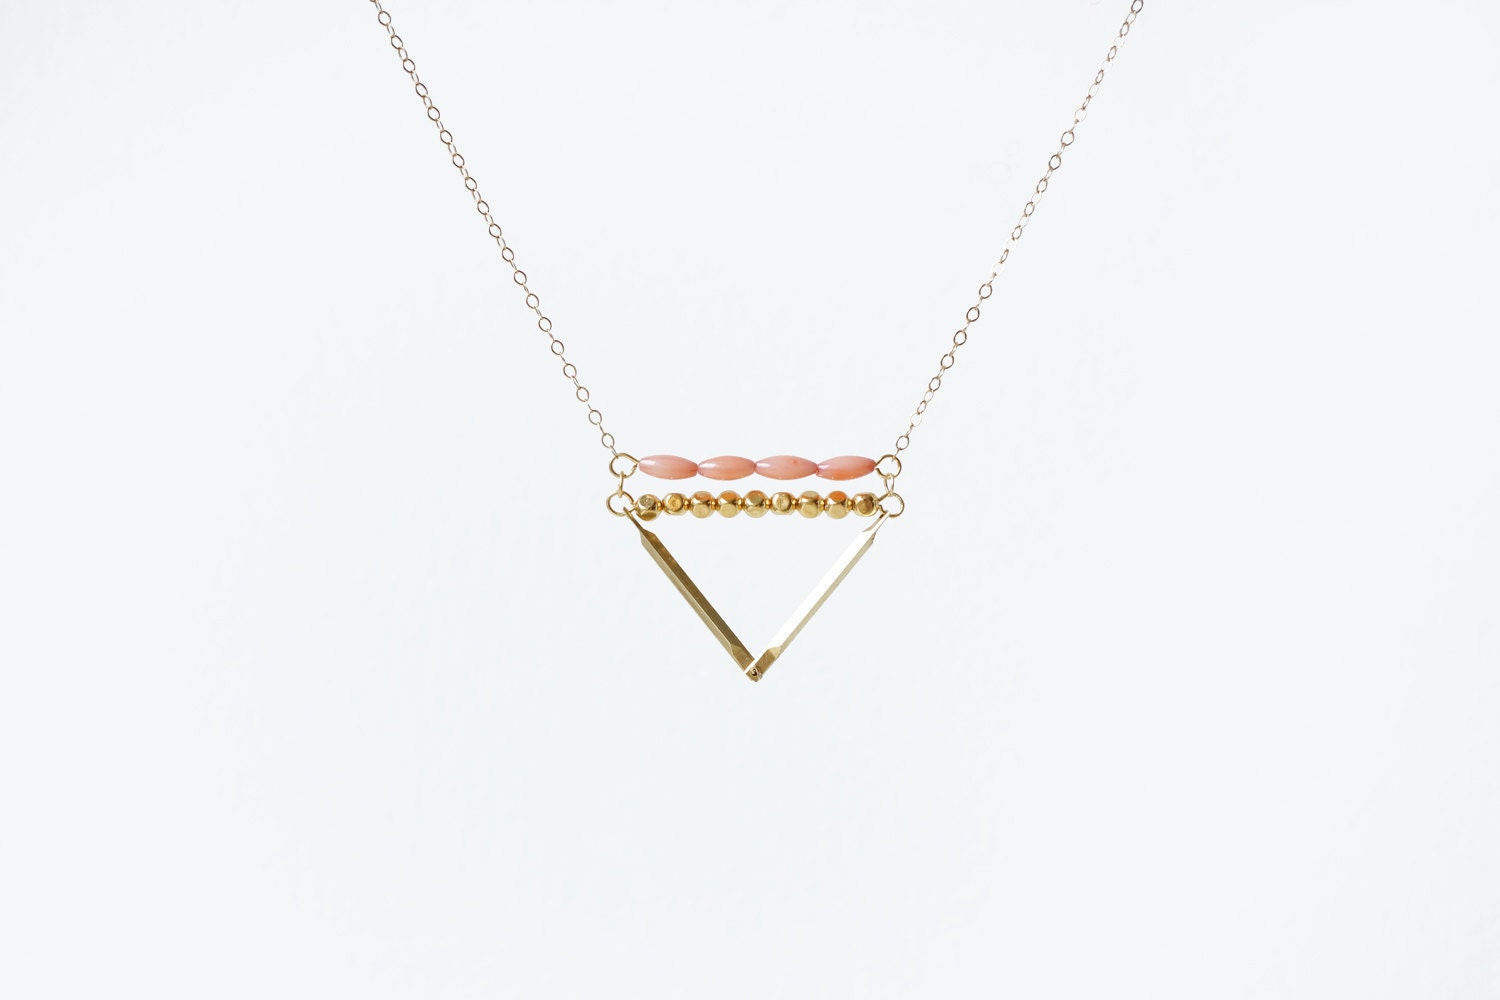 Coral & Brass Triangle - 14k Gold Filled Chain - MadeByMaru